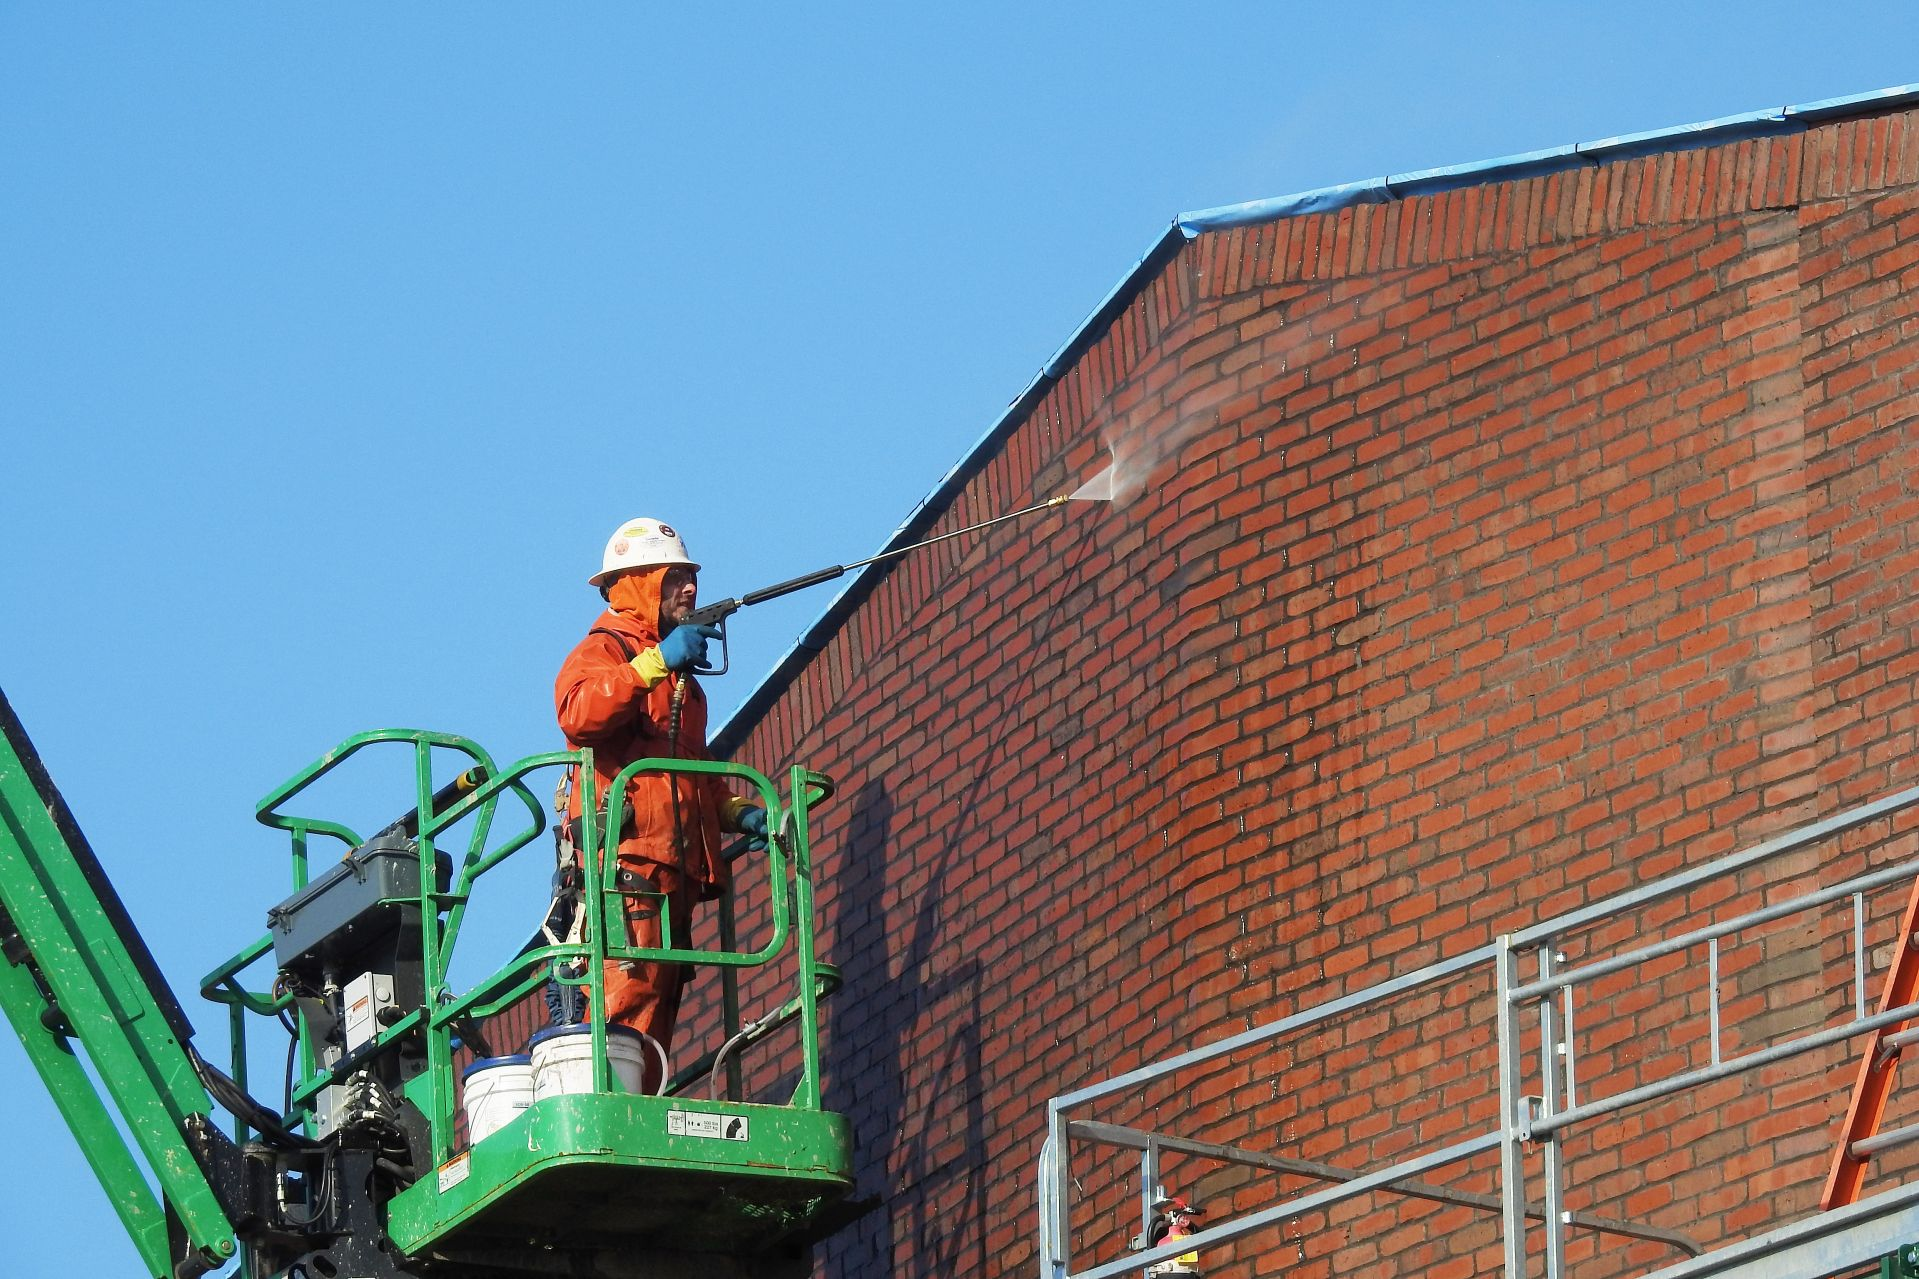 Images of interior spaces (lounges, classrooms, labs, stairwells) and exteriors of the Bonney Science Center.A worker power washes brick exterior.